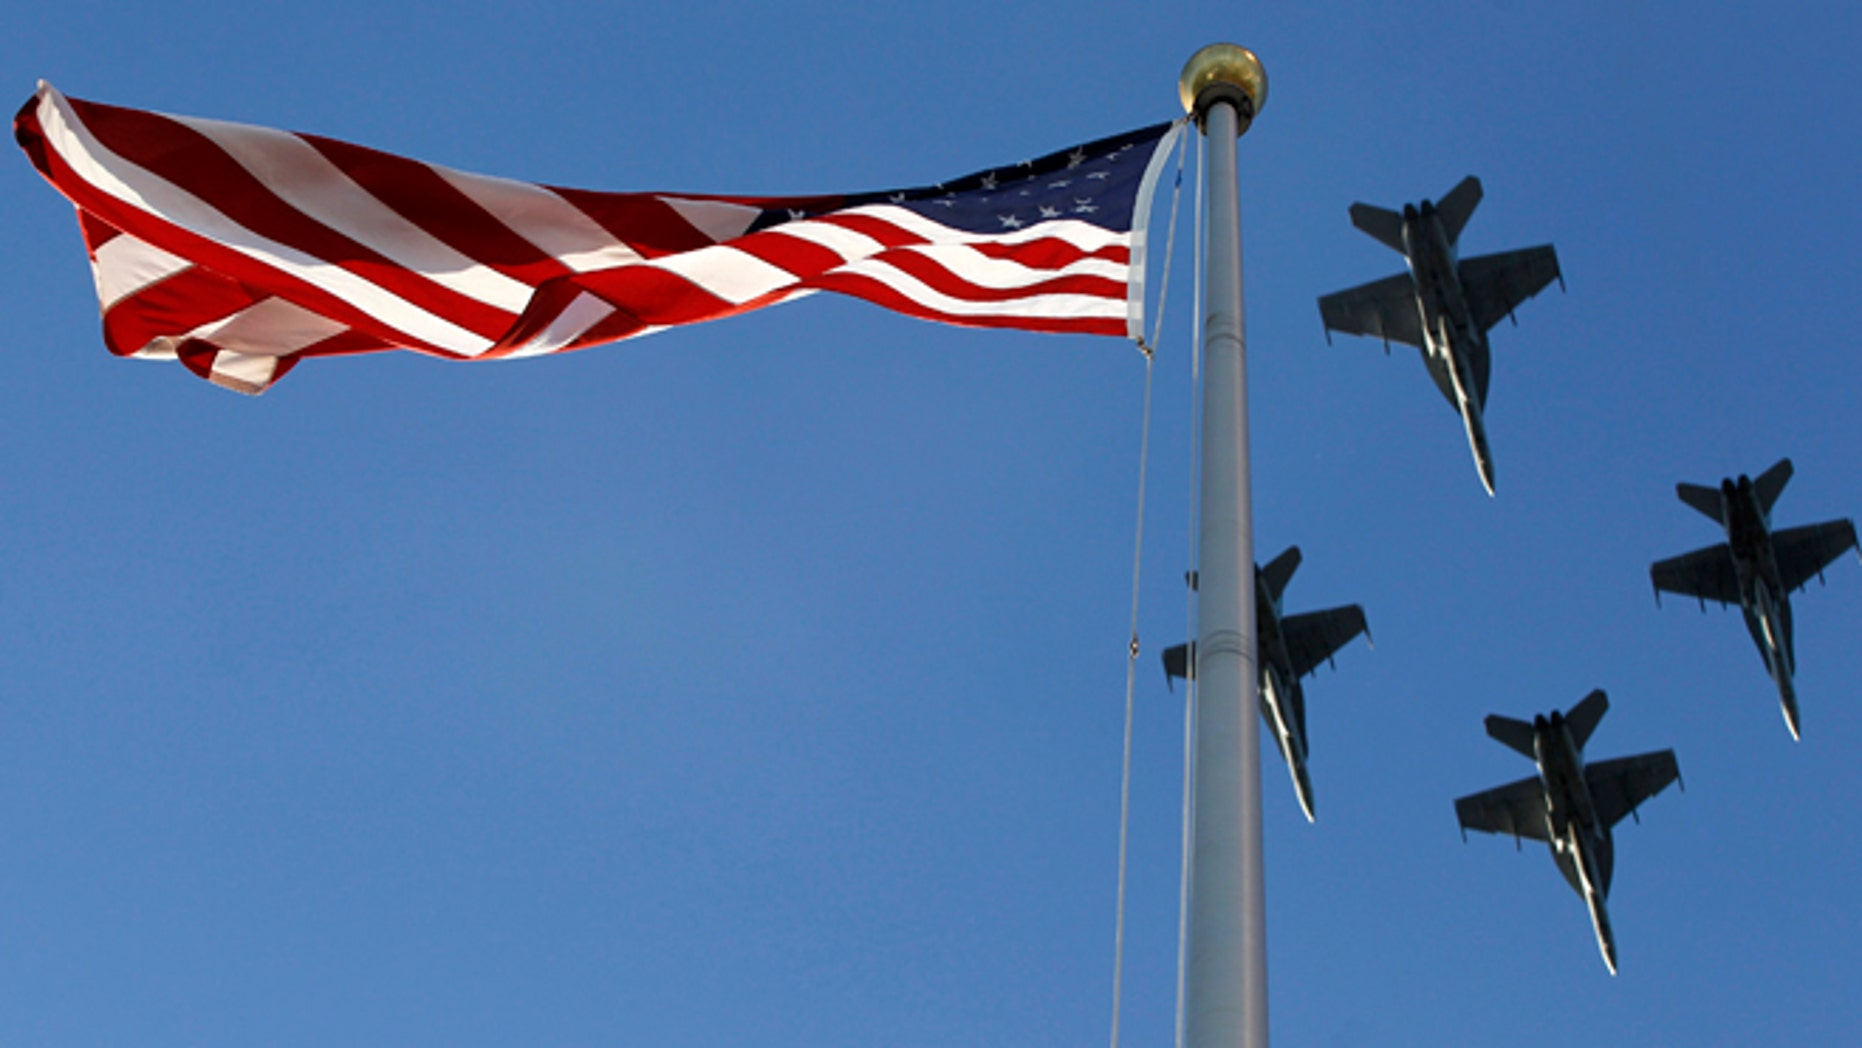 FILE 2012: Under newly passed legislation, the Department of Defense is required to purchase American flags from US companies.